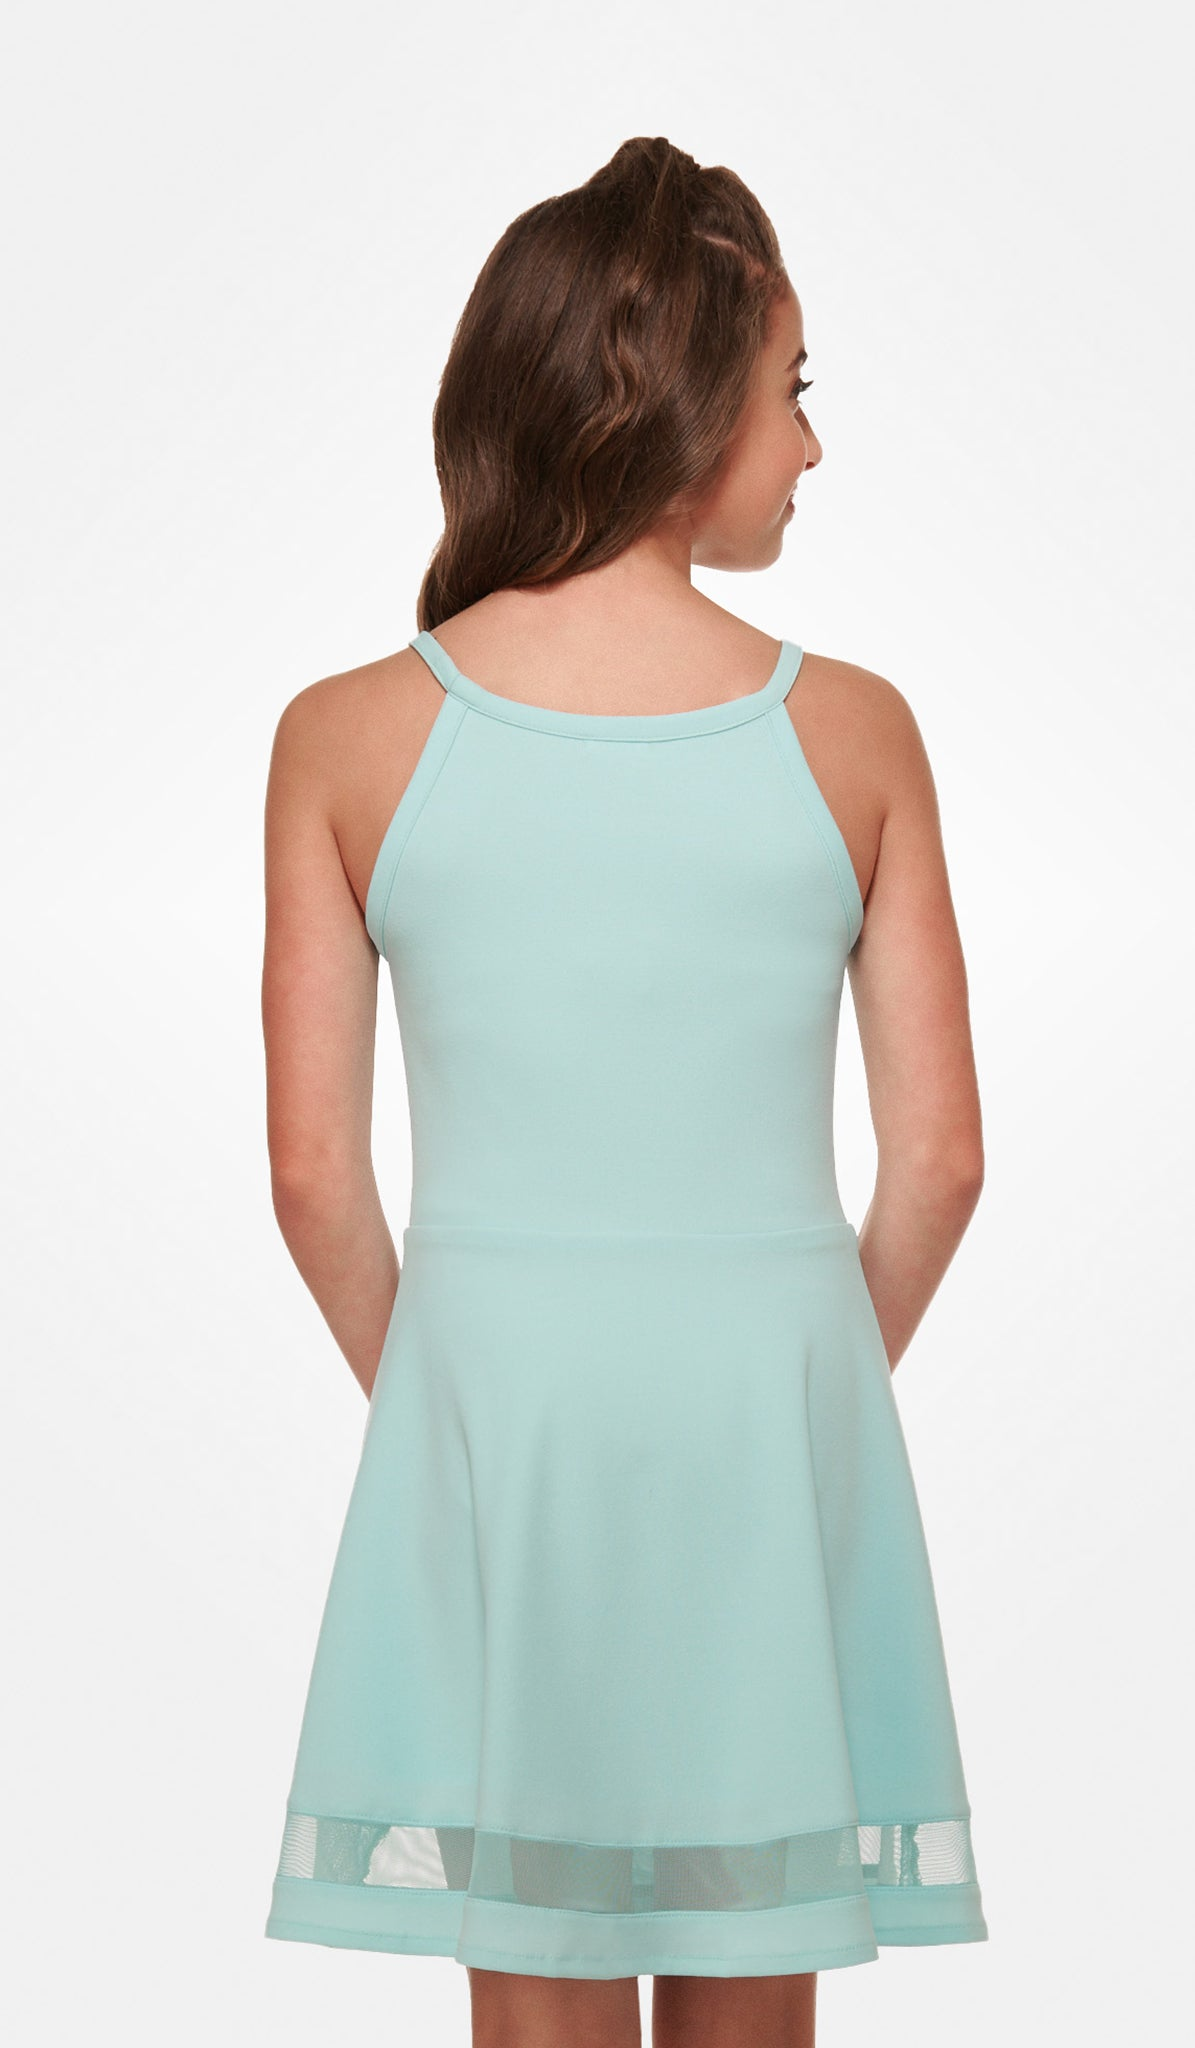 The Sally Miller Tiffany Dress - Lt. Aqua stretch crepe georgette dress fully lined with mesh illusion detail